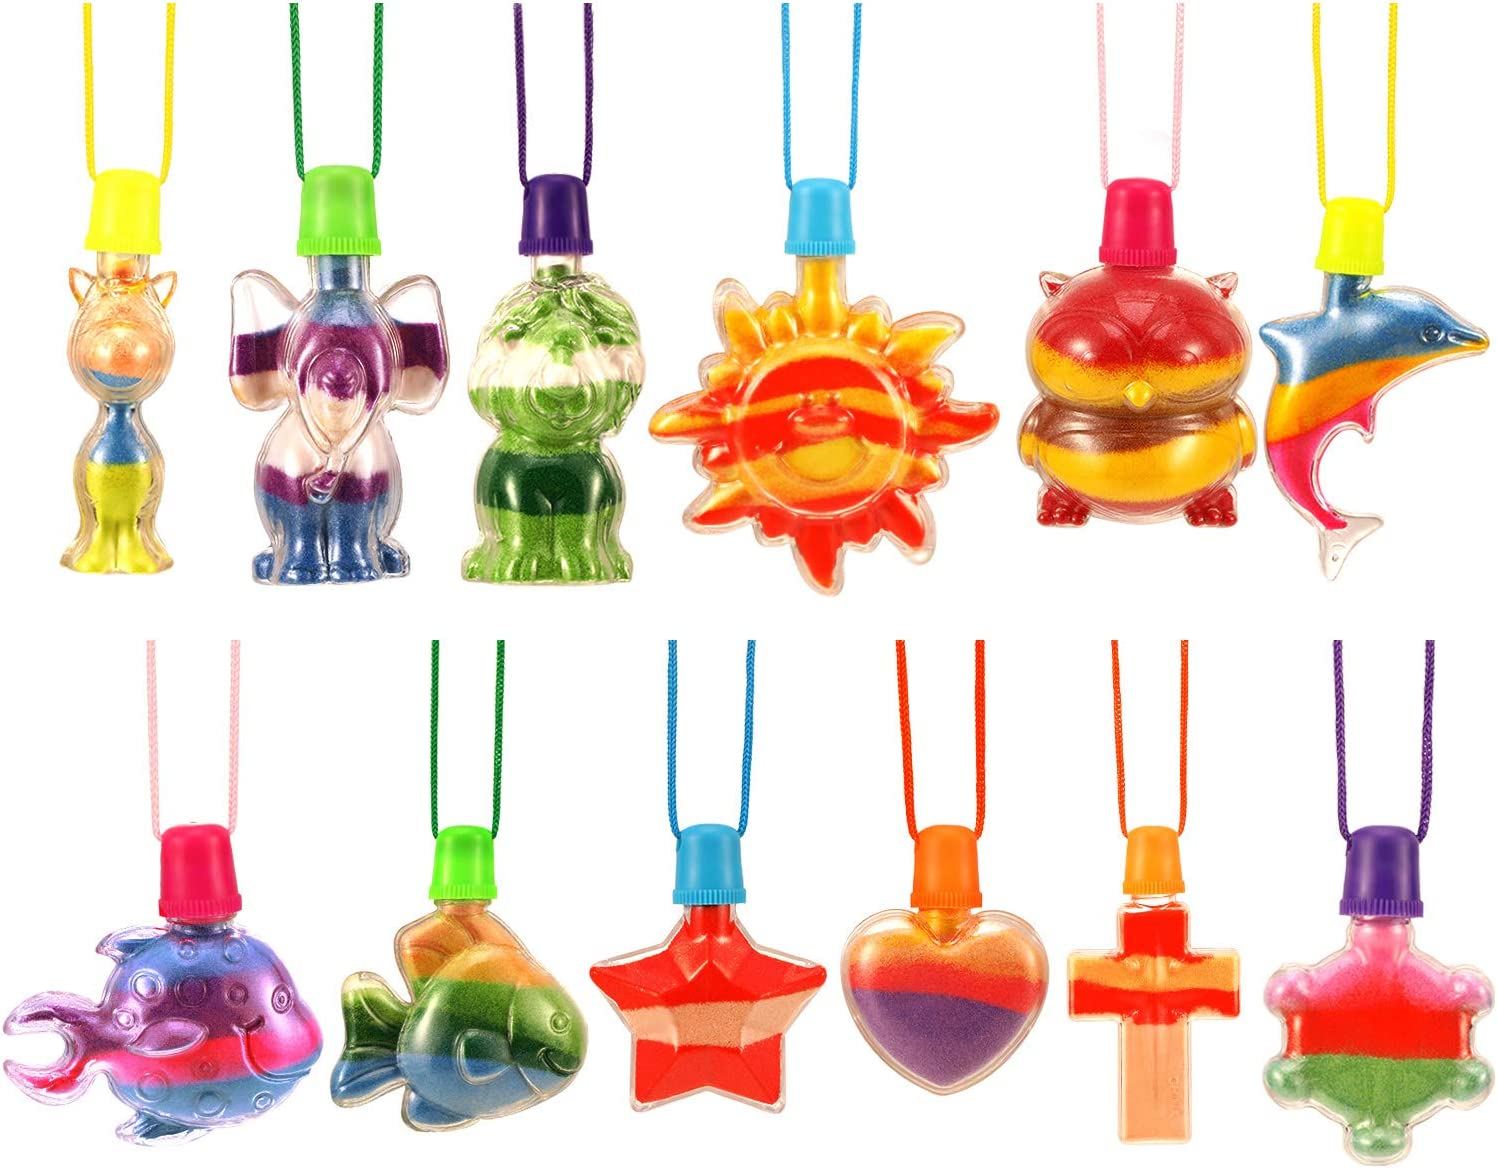 12 Pieces Sand Art Bottle Necklaces Animals Sand Art Necklace for Novelty Art Activity Group Variety Summer Beach Games Sand not Included